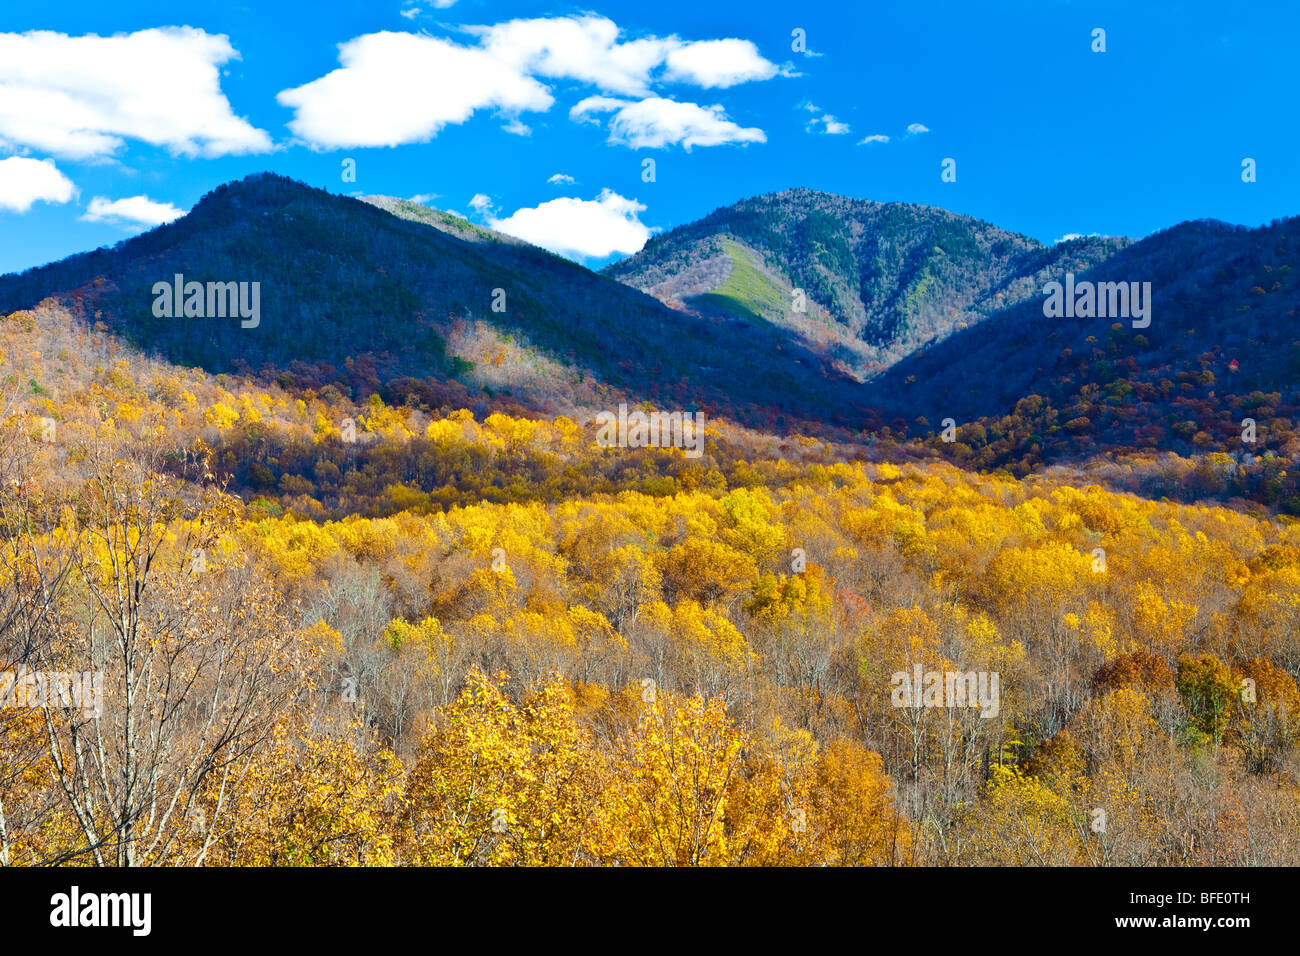 View from Newfound Gap Road, Great Smoky Mountains National Park, Tennessee - Stock Image